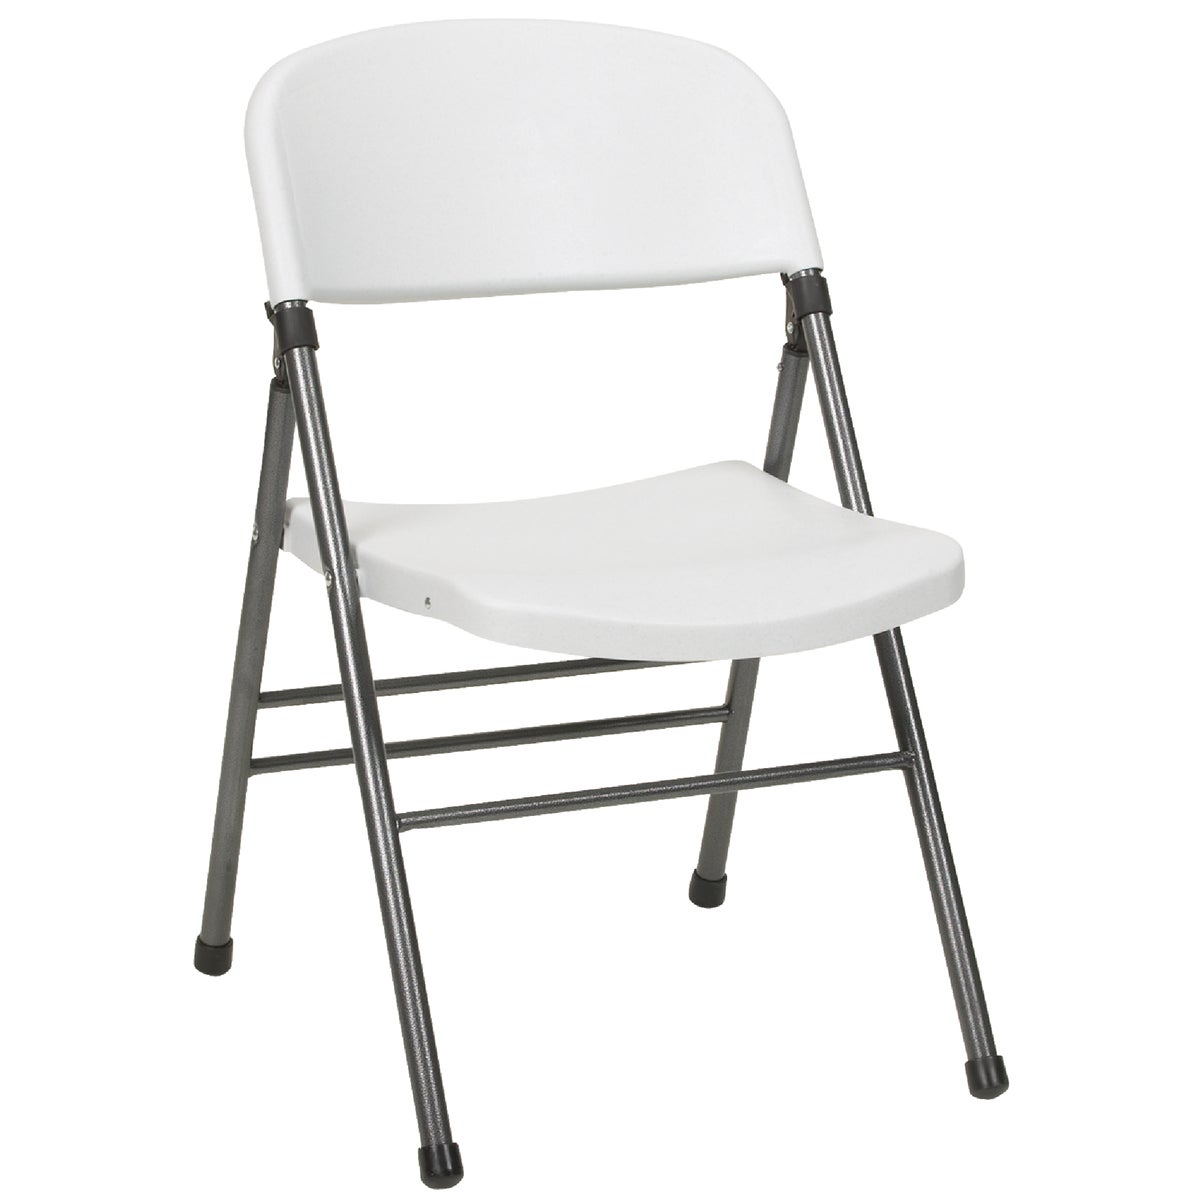 ENDURA CHAIR - 14-869-WSP4 by Cosco    J Myalls